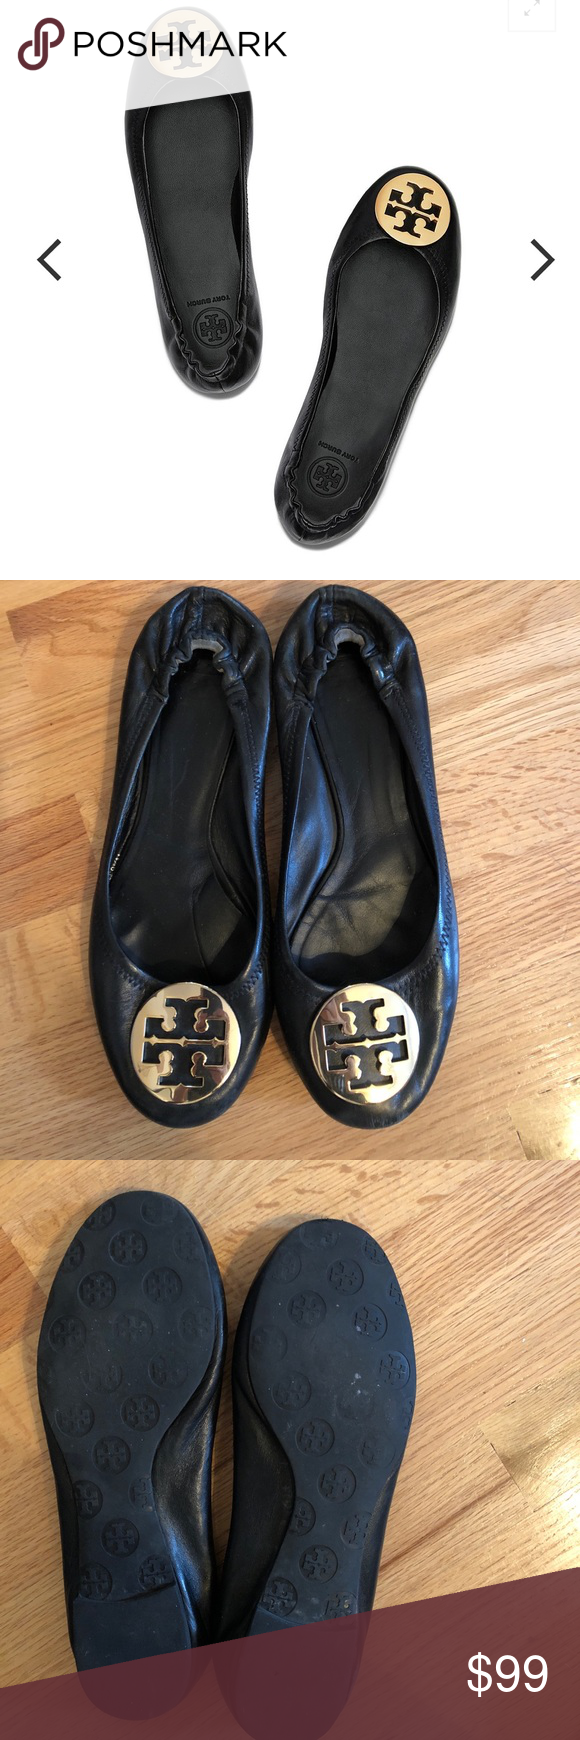 Tory Burch Minnie Travel Ballet Flats, Leather